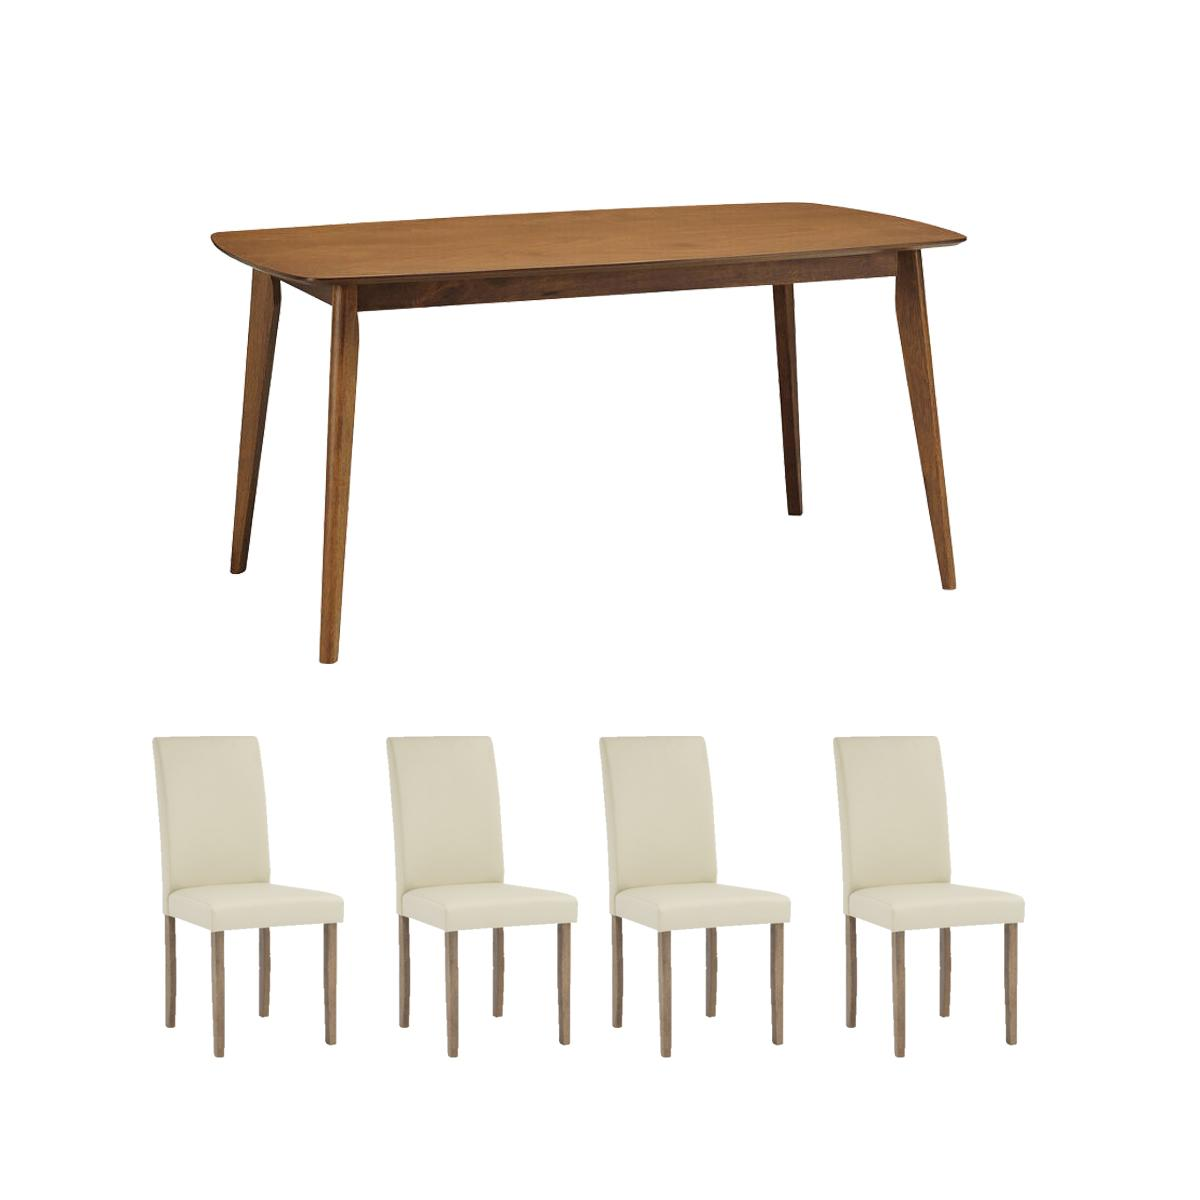 Solid Wood Dining Table + 4 Dining Chair. Quality Dining Set